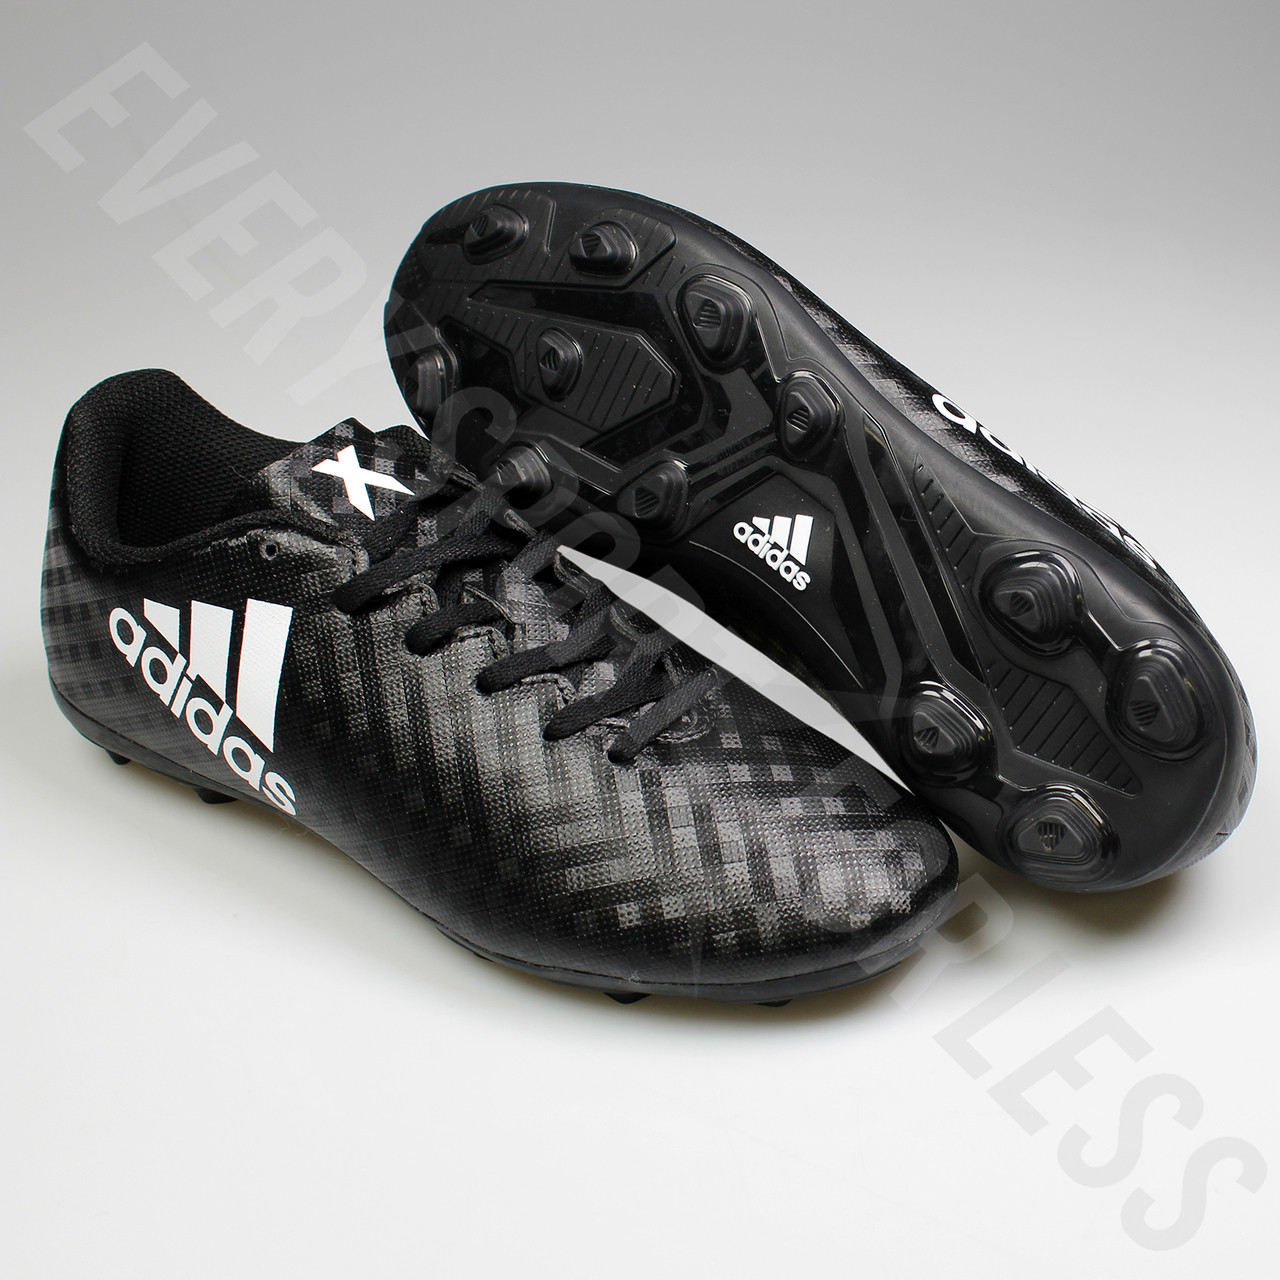 5448c54ace43 ... Adidas X 16.4 FxG Junior Soccer Cleats BB1045 - Black, White ...